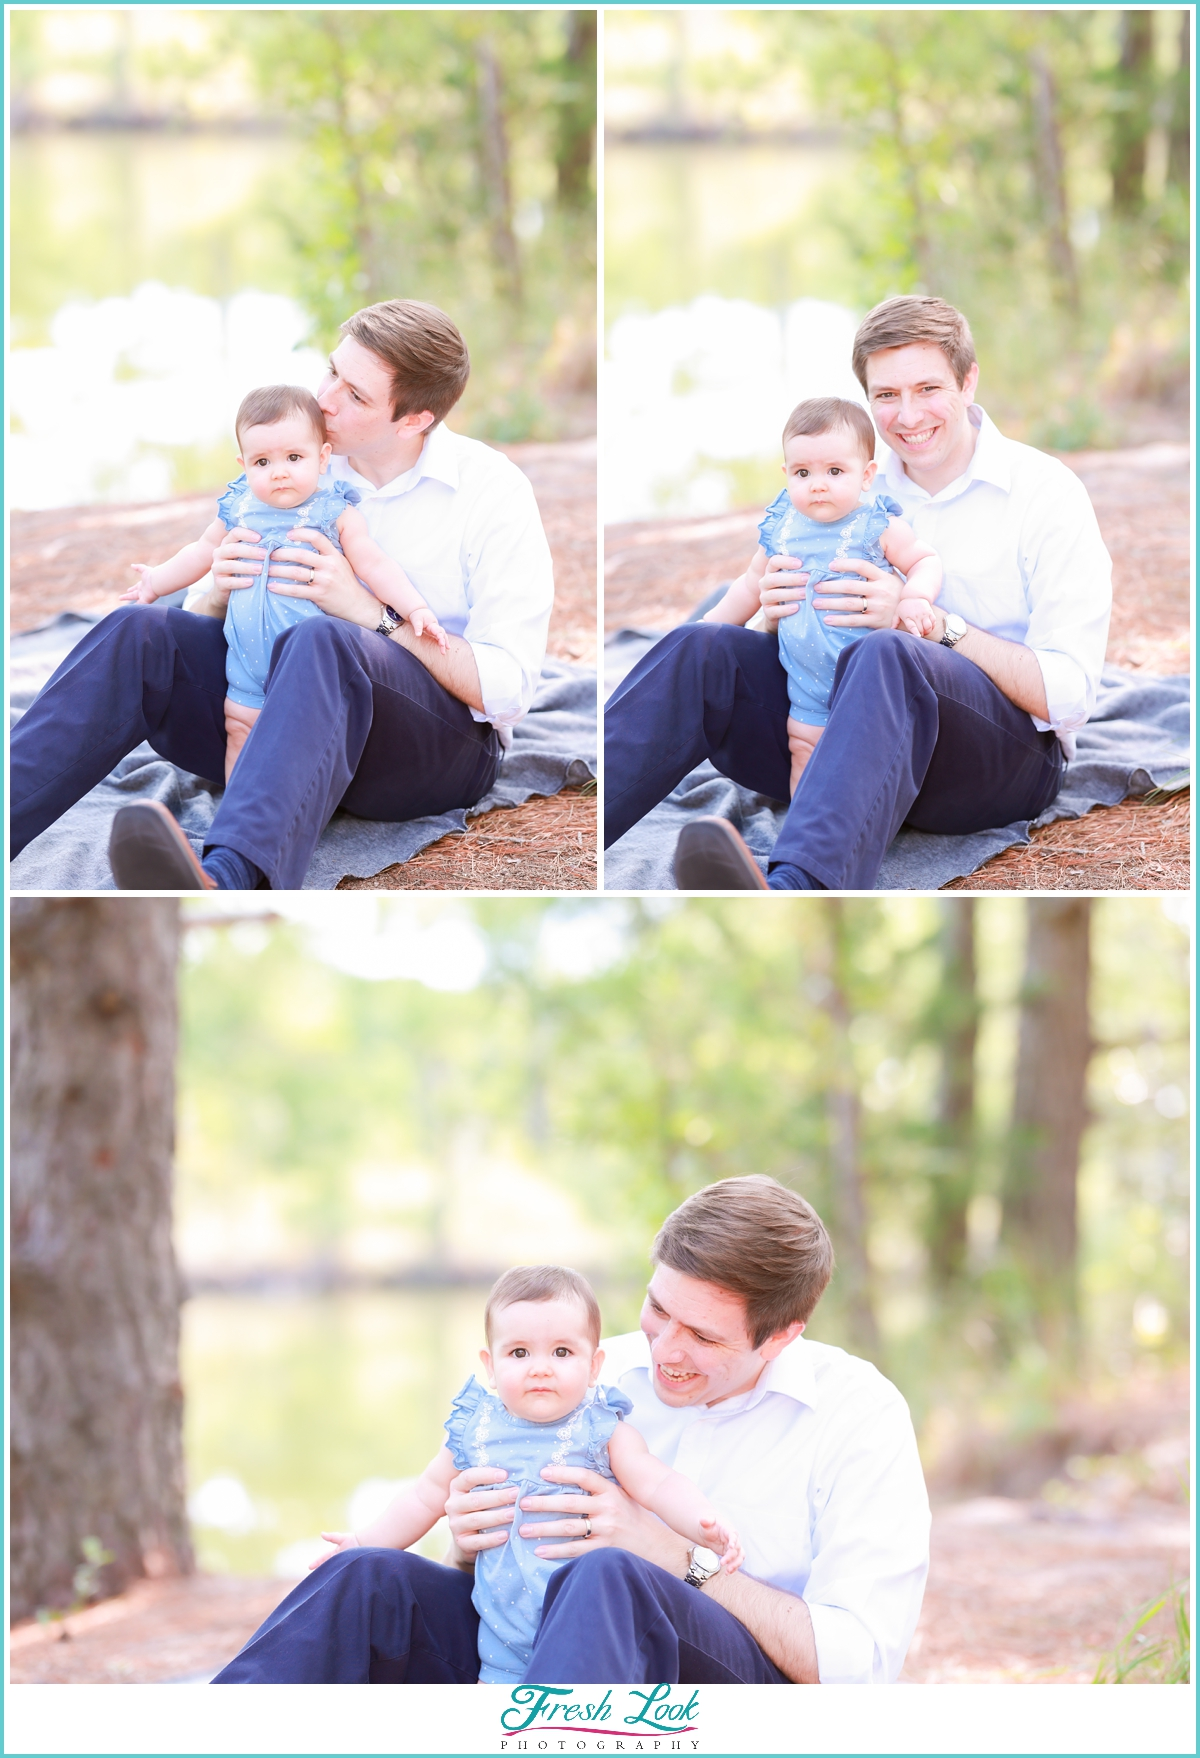 Fathers of Daughters photoshoot